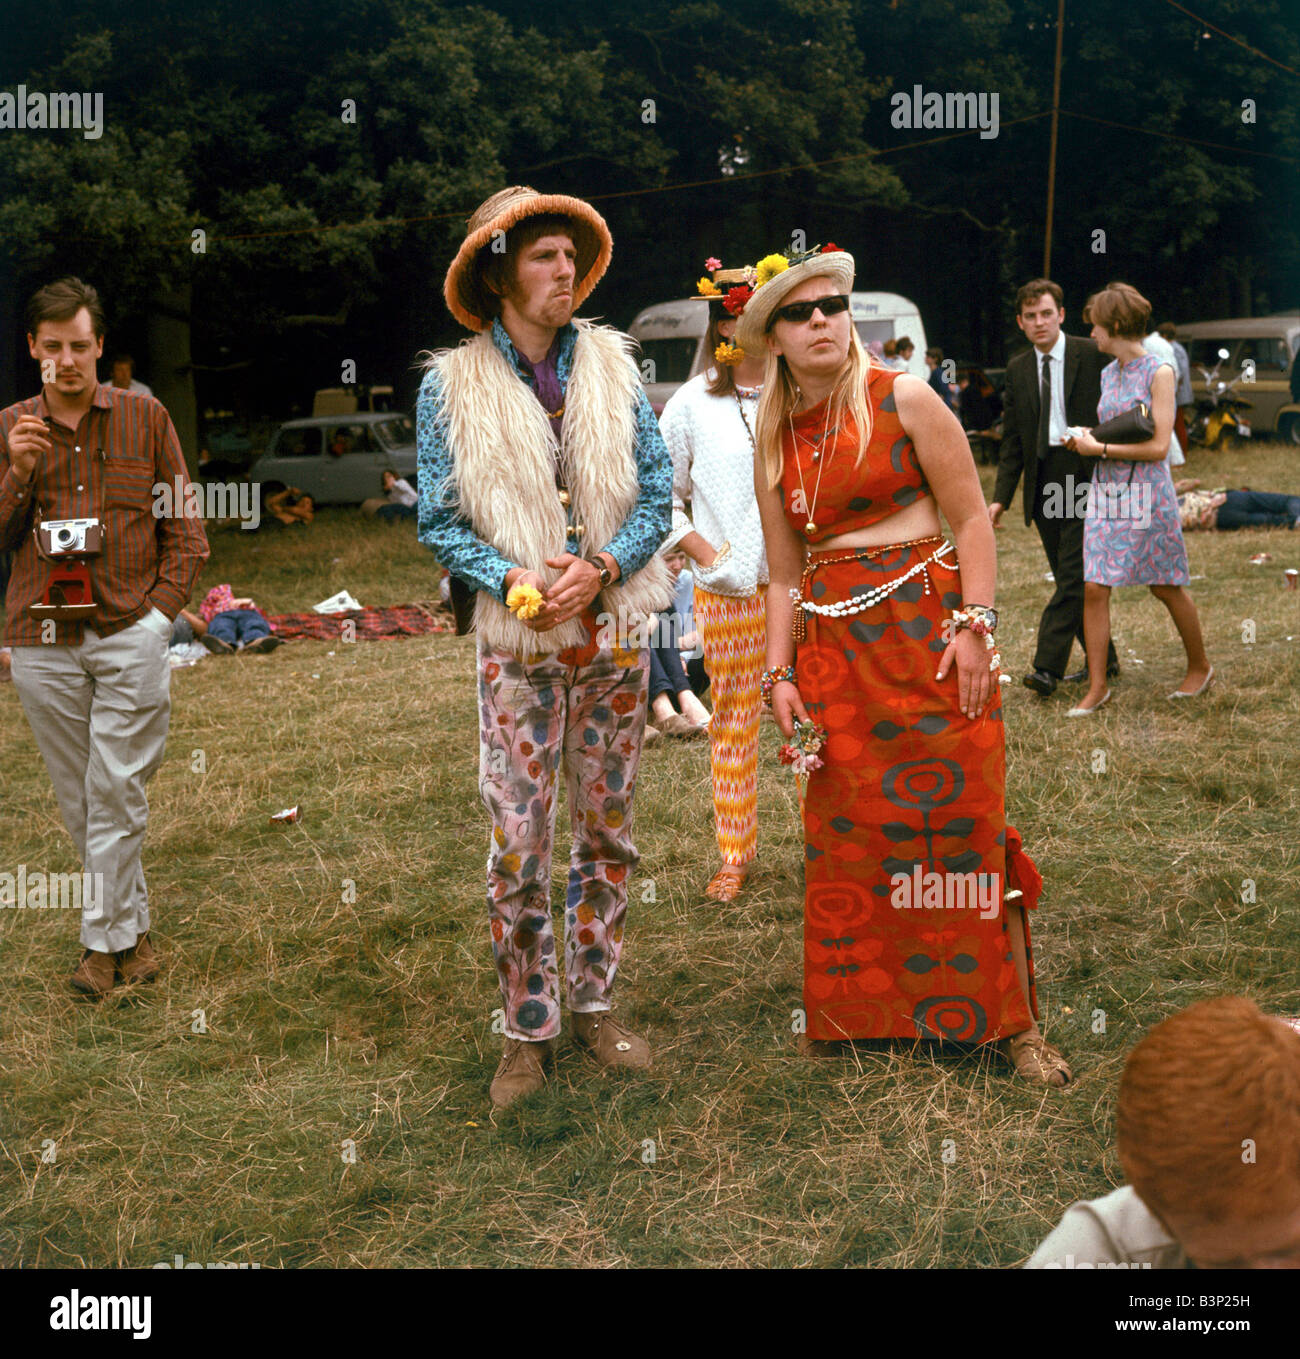 Hippie Fashion Photography: Sixties Fashion 1960s Clothing Hippies At Flower Festival